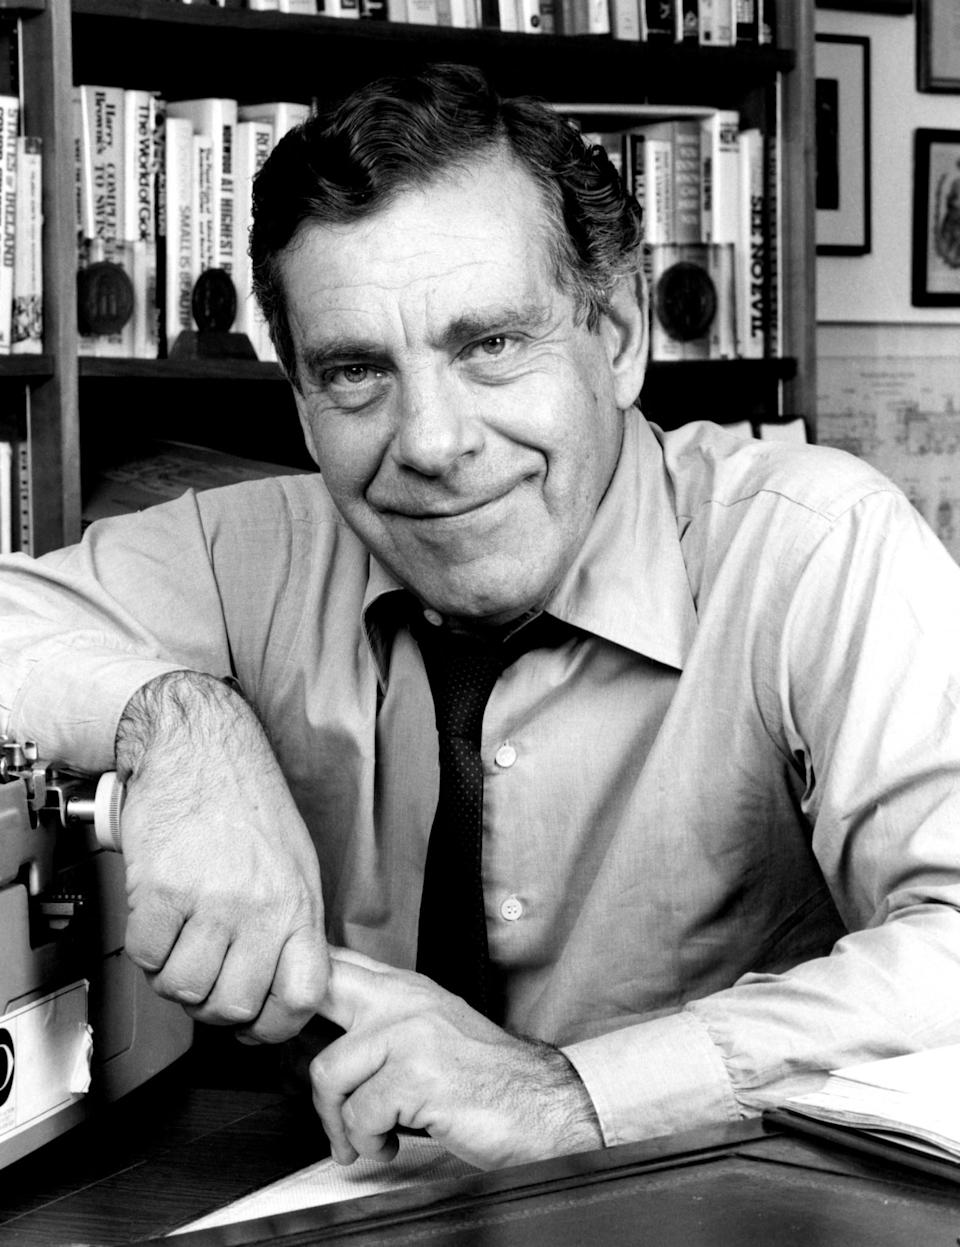 <p>CBS newsman Morley Safer of '60 Minutes' died on May 19, 2016 at 85 from pneumonia. Photo from Getty Images </p>